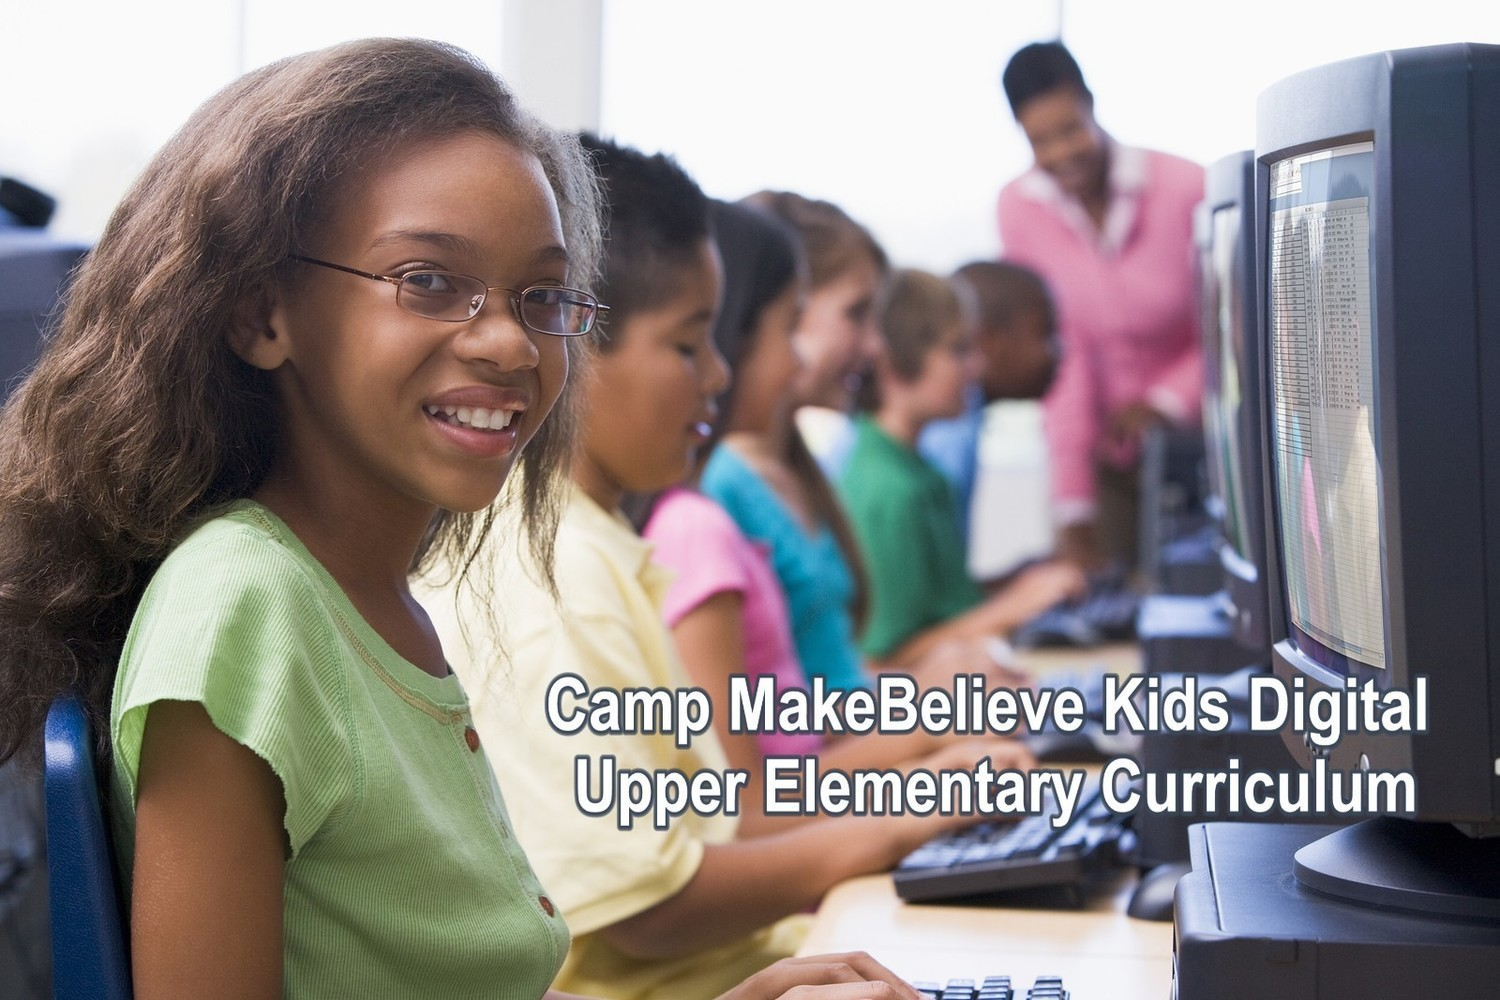 Camp MakeBelieve Kids Upper Elementary Digital Curriculum